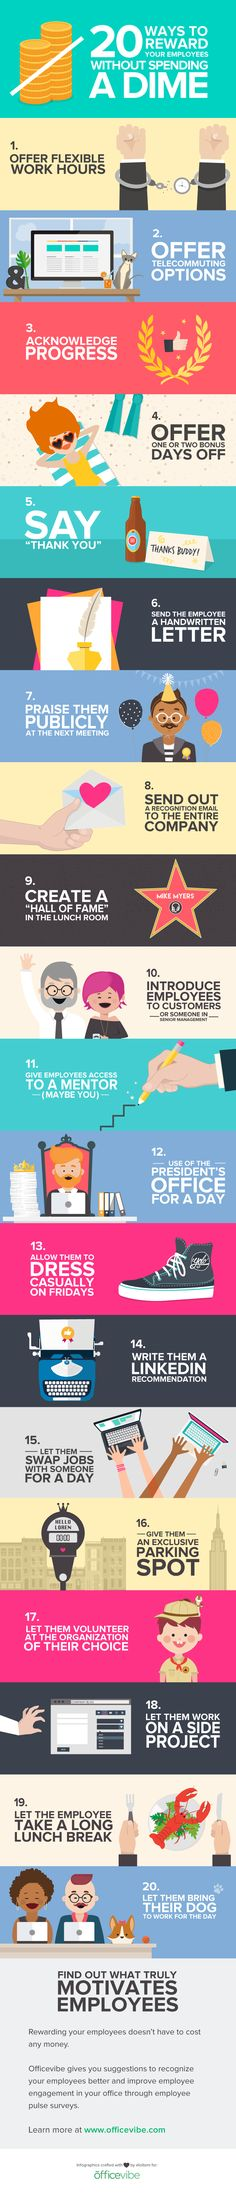 Some great suggestions to improve morale while not breaking the bank. Everyone likes to be rewarded for their hard work, why not try some of these?